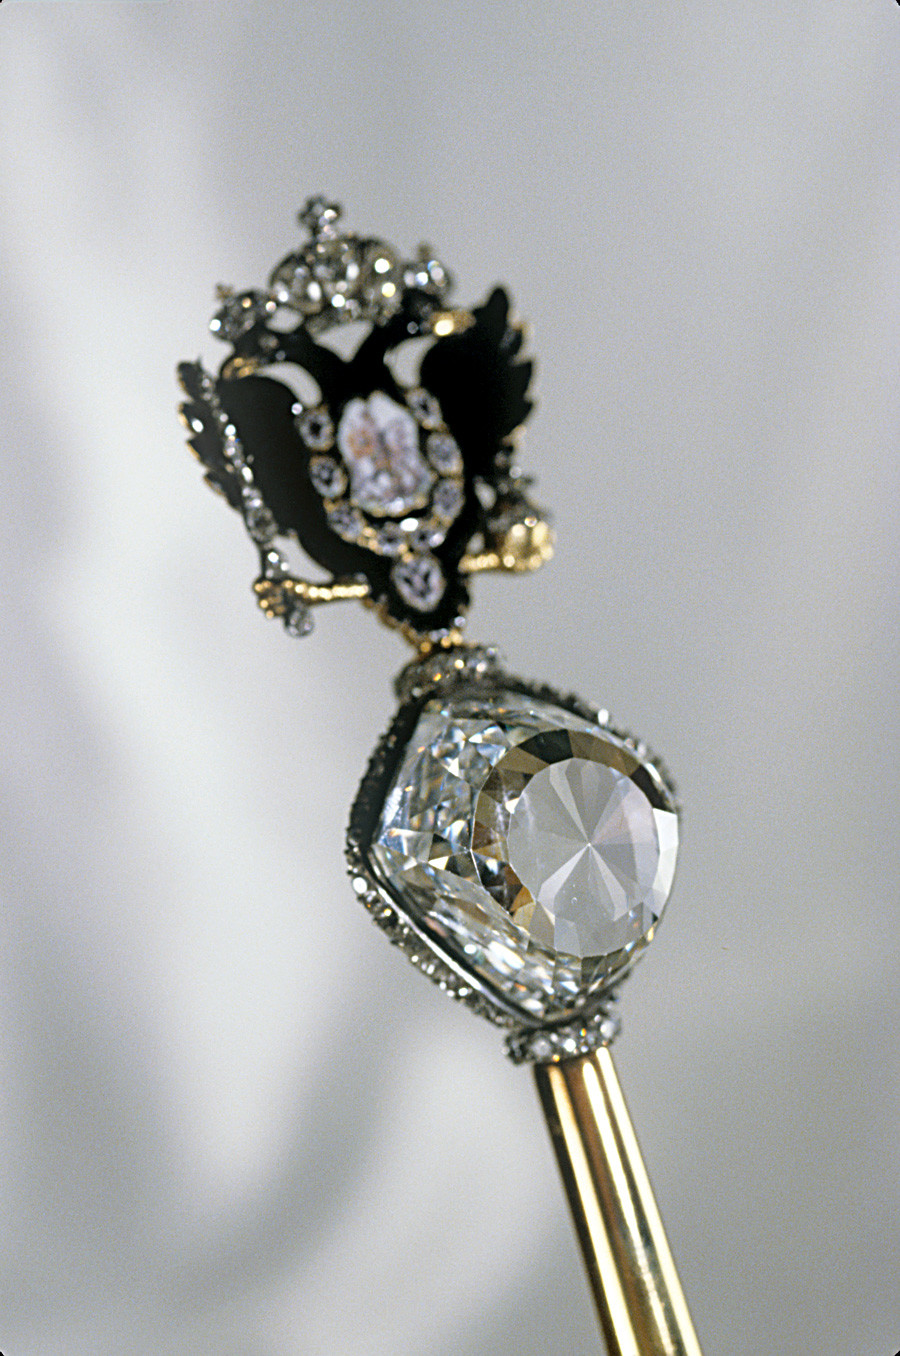 Imperial scepter made for Catherine the Great in the early 1770s. Topped by the Orlov diamond and a gold cast double-headed eagle.